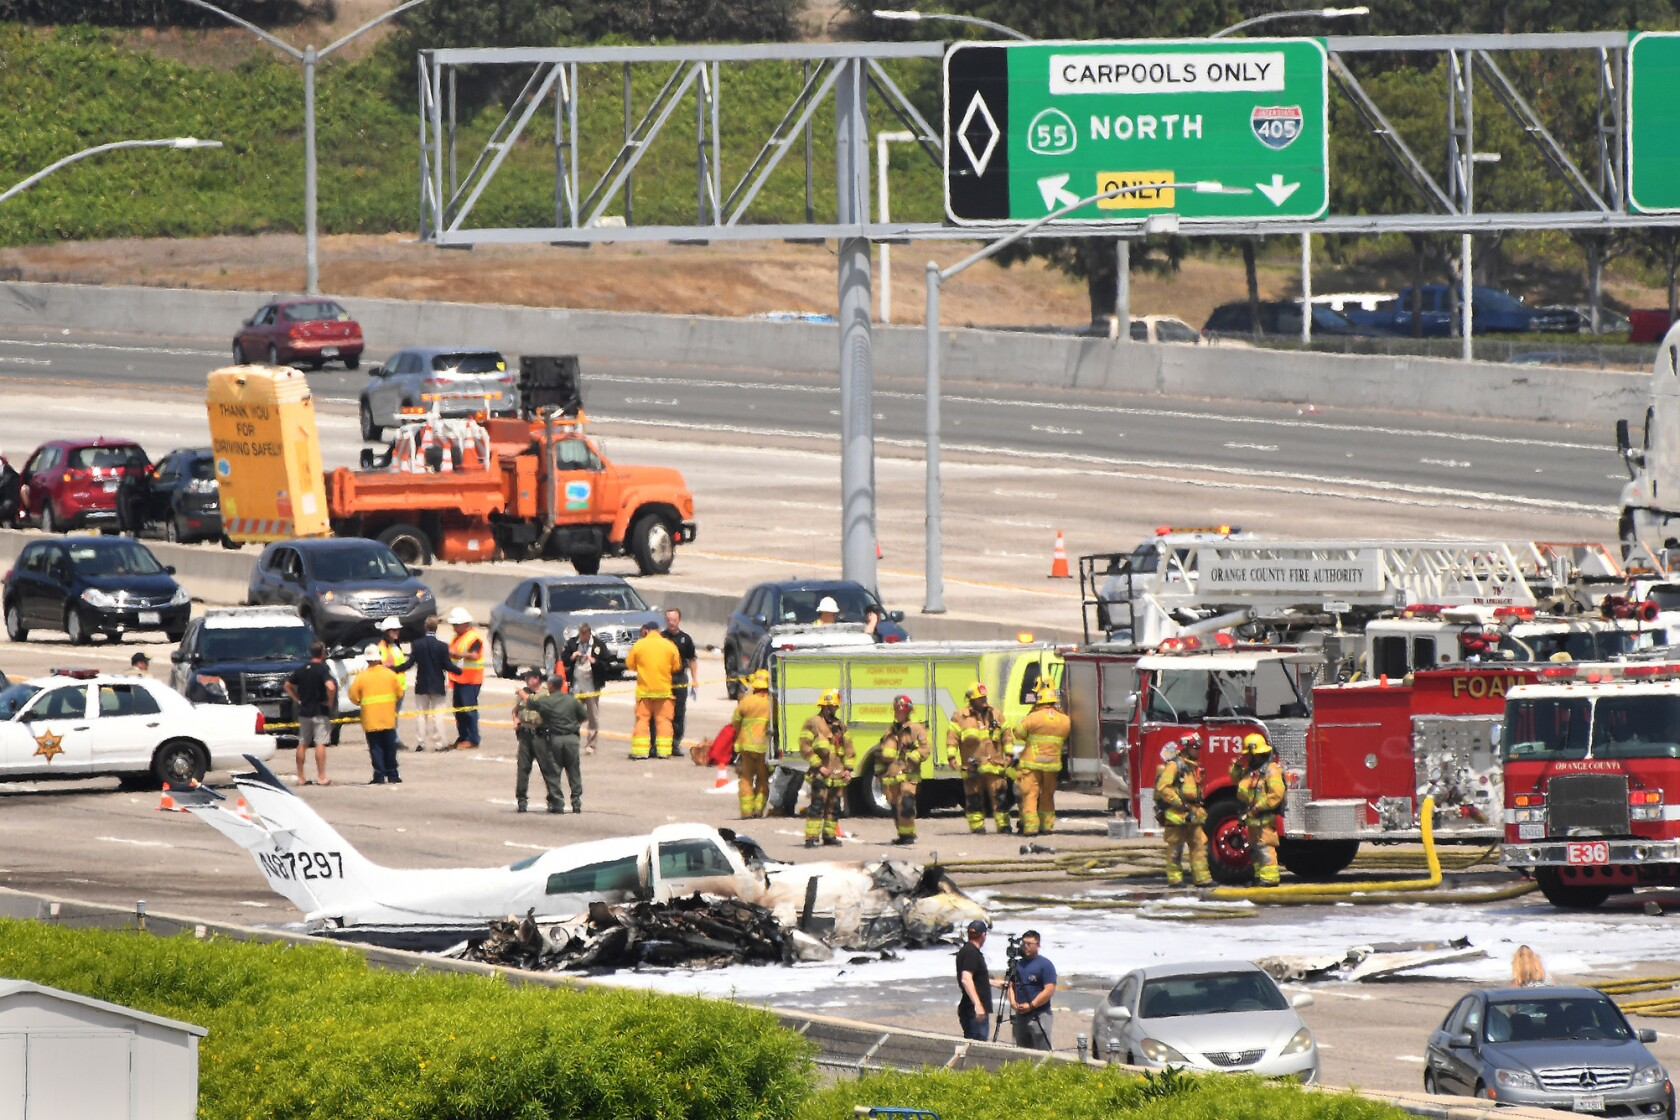 We got a mayday!' Small plane crashes onto 405 Freeway in